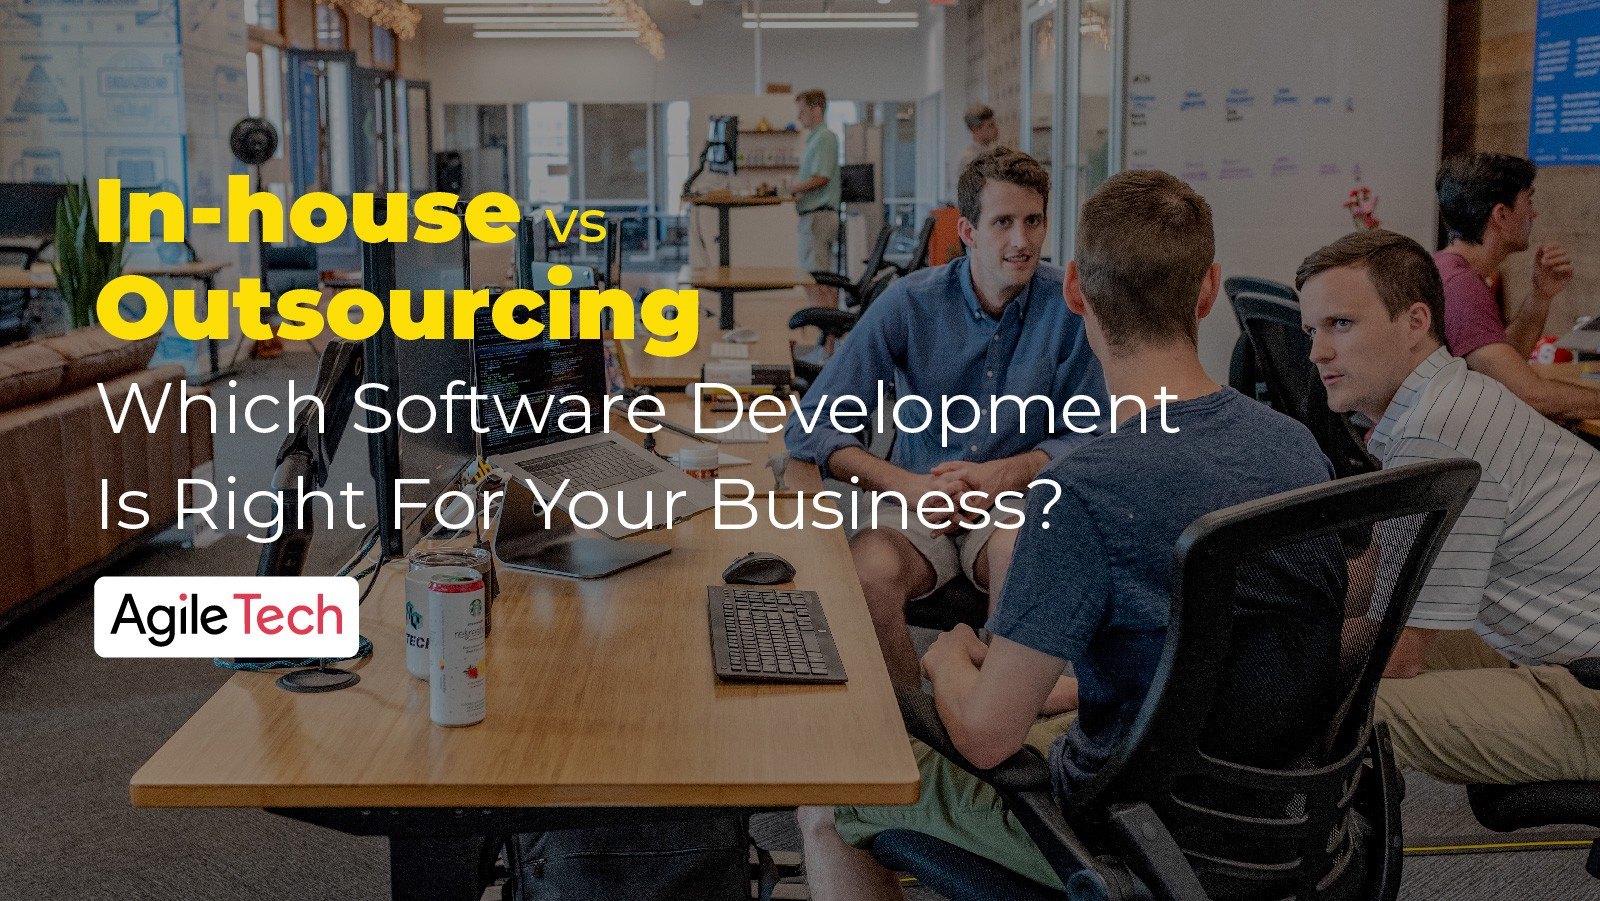 in house vs outsourcing, pros and cons of in-house vs outsourced software development, in-house vs outsource vs freelance